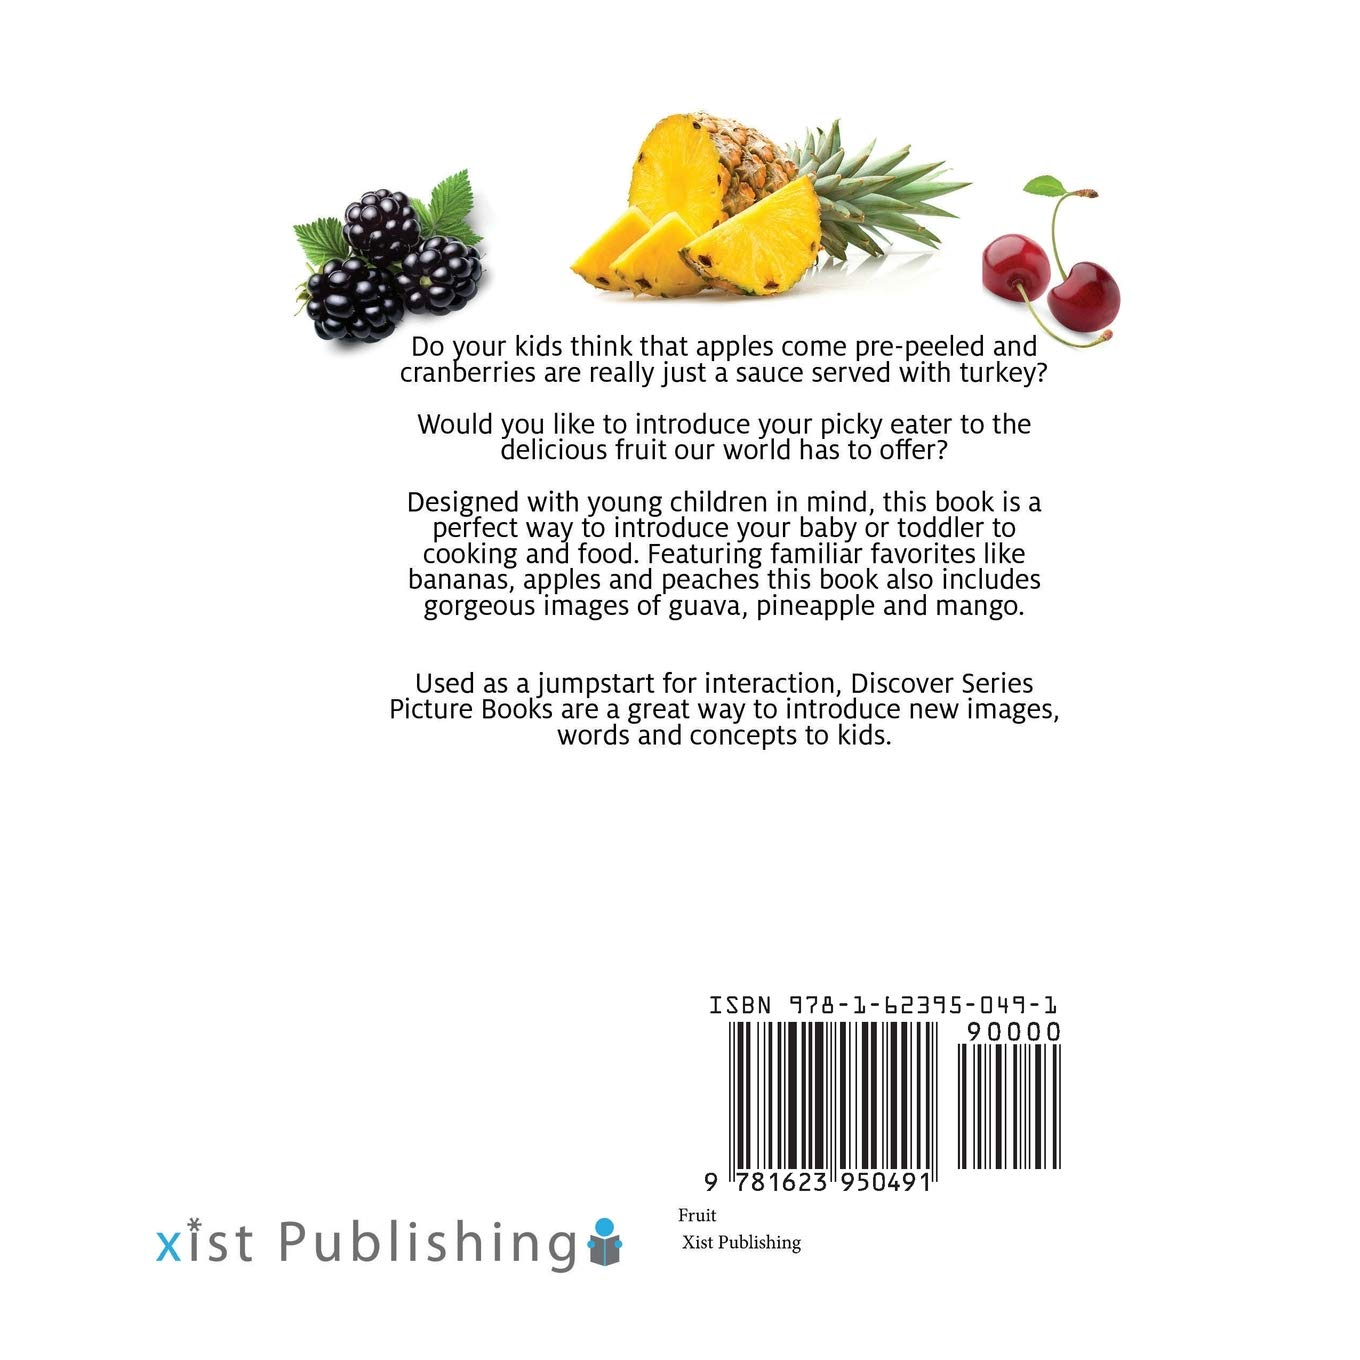 Fruit: Discover Series Picture Book for Children: Xist